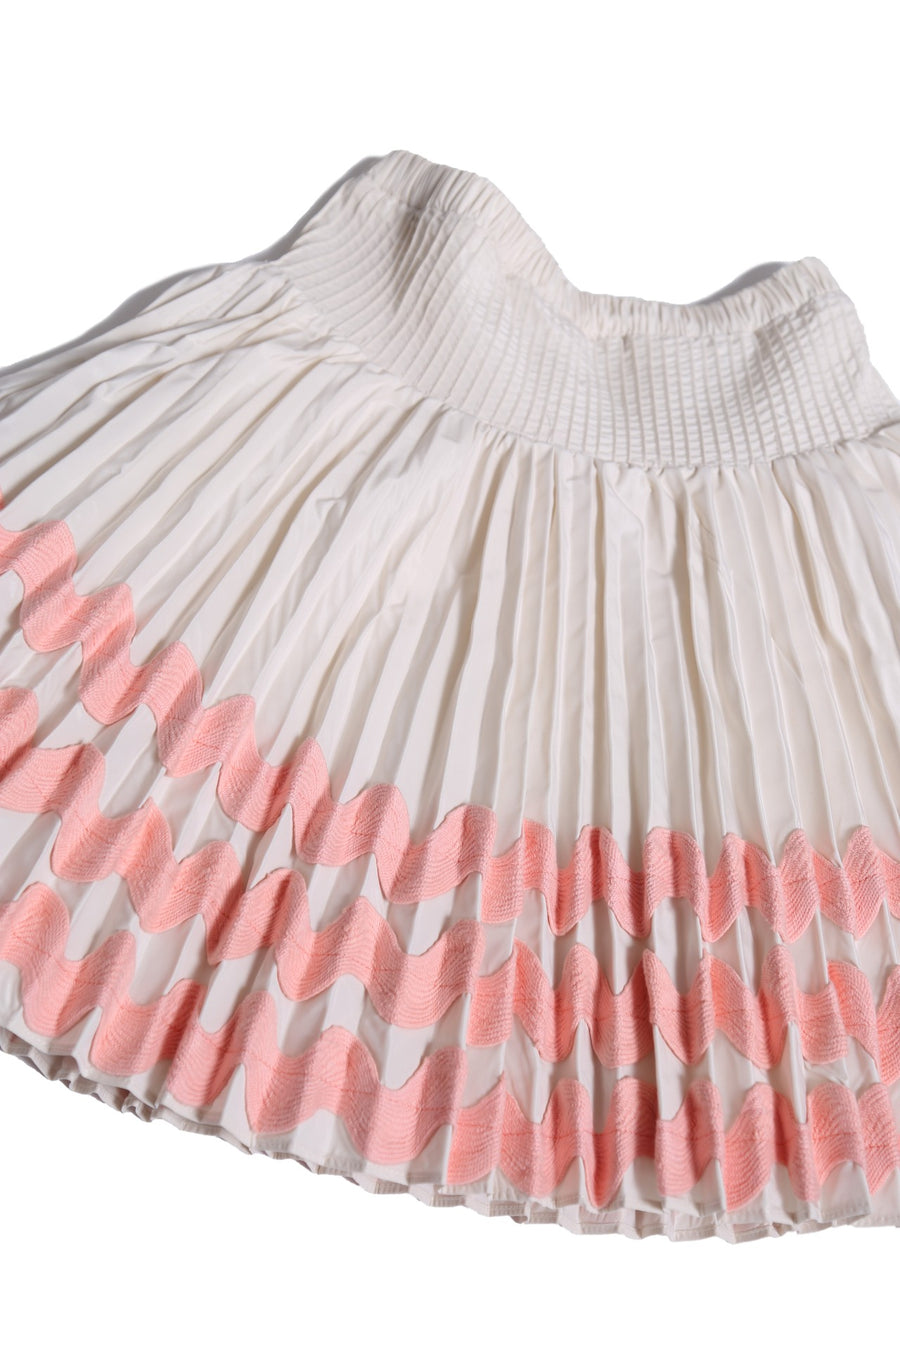 Genoveva Pleated Skirt